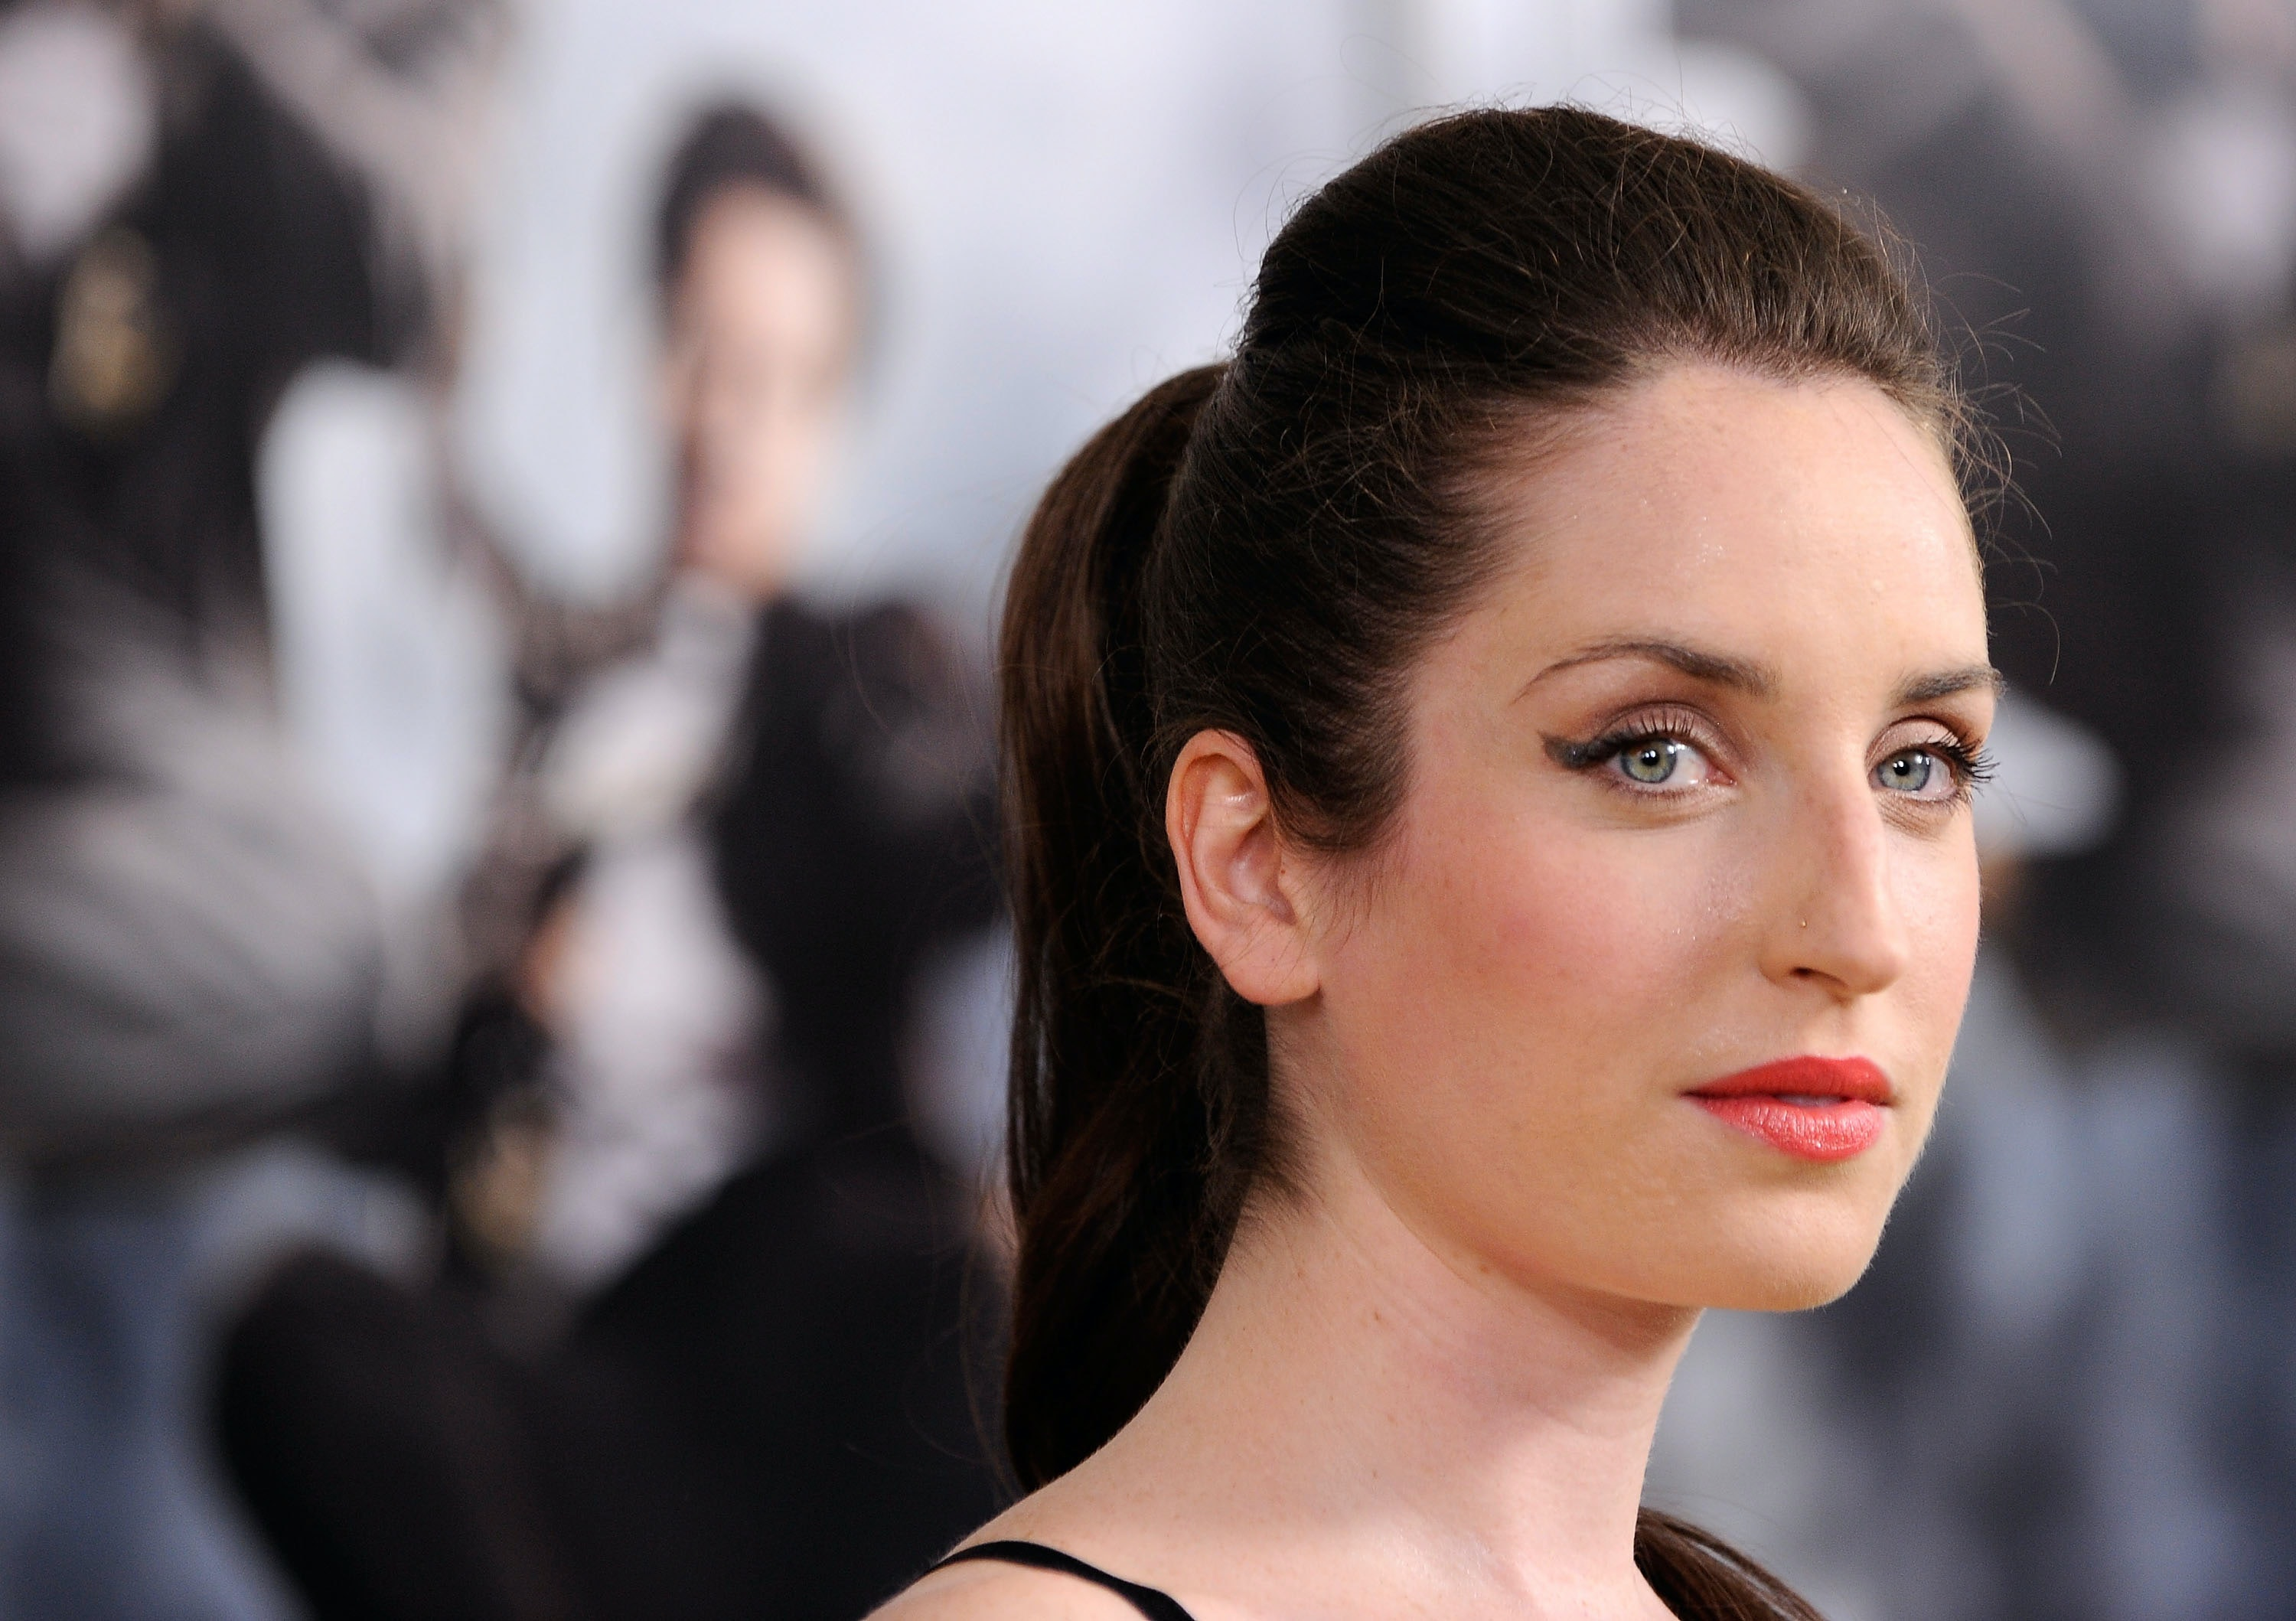 zoe lister jones interview